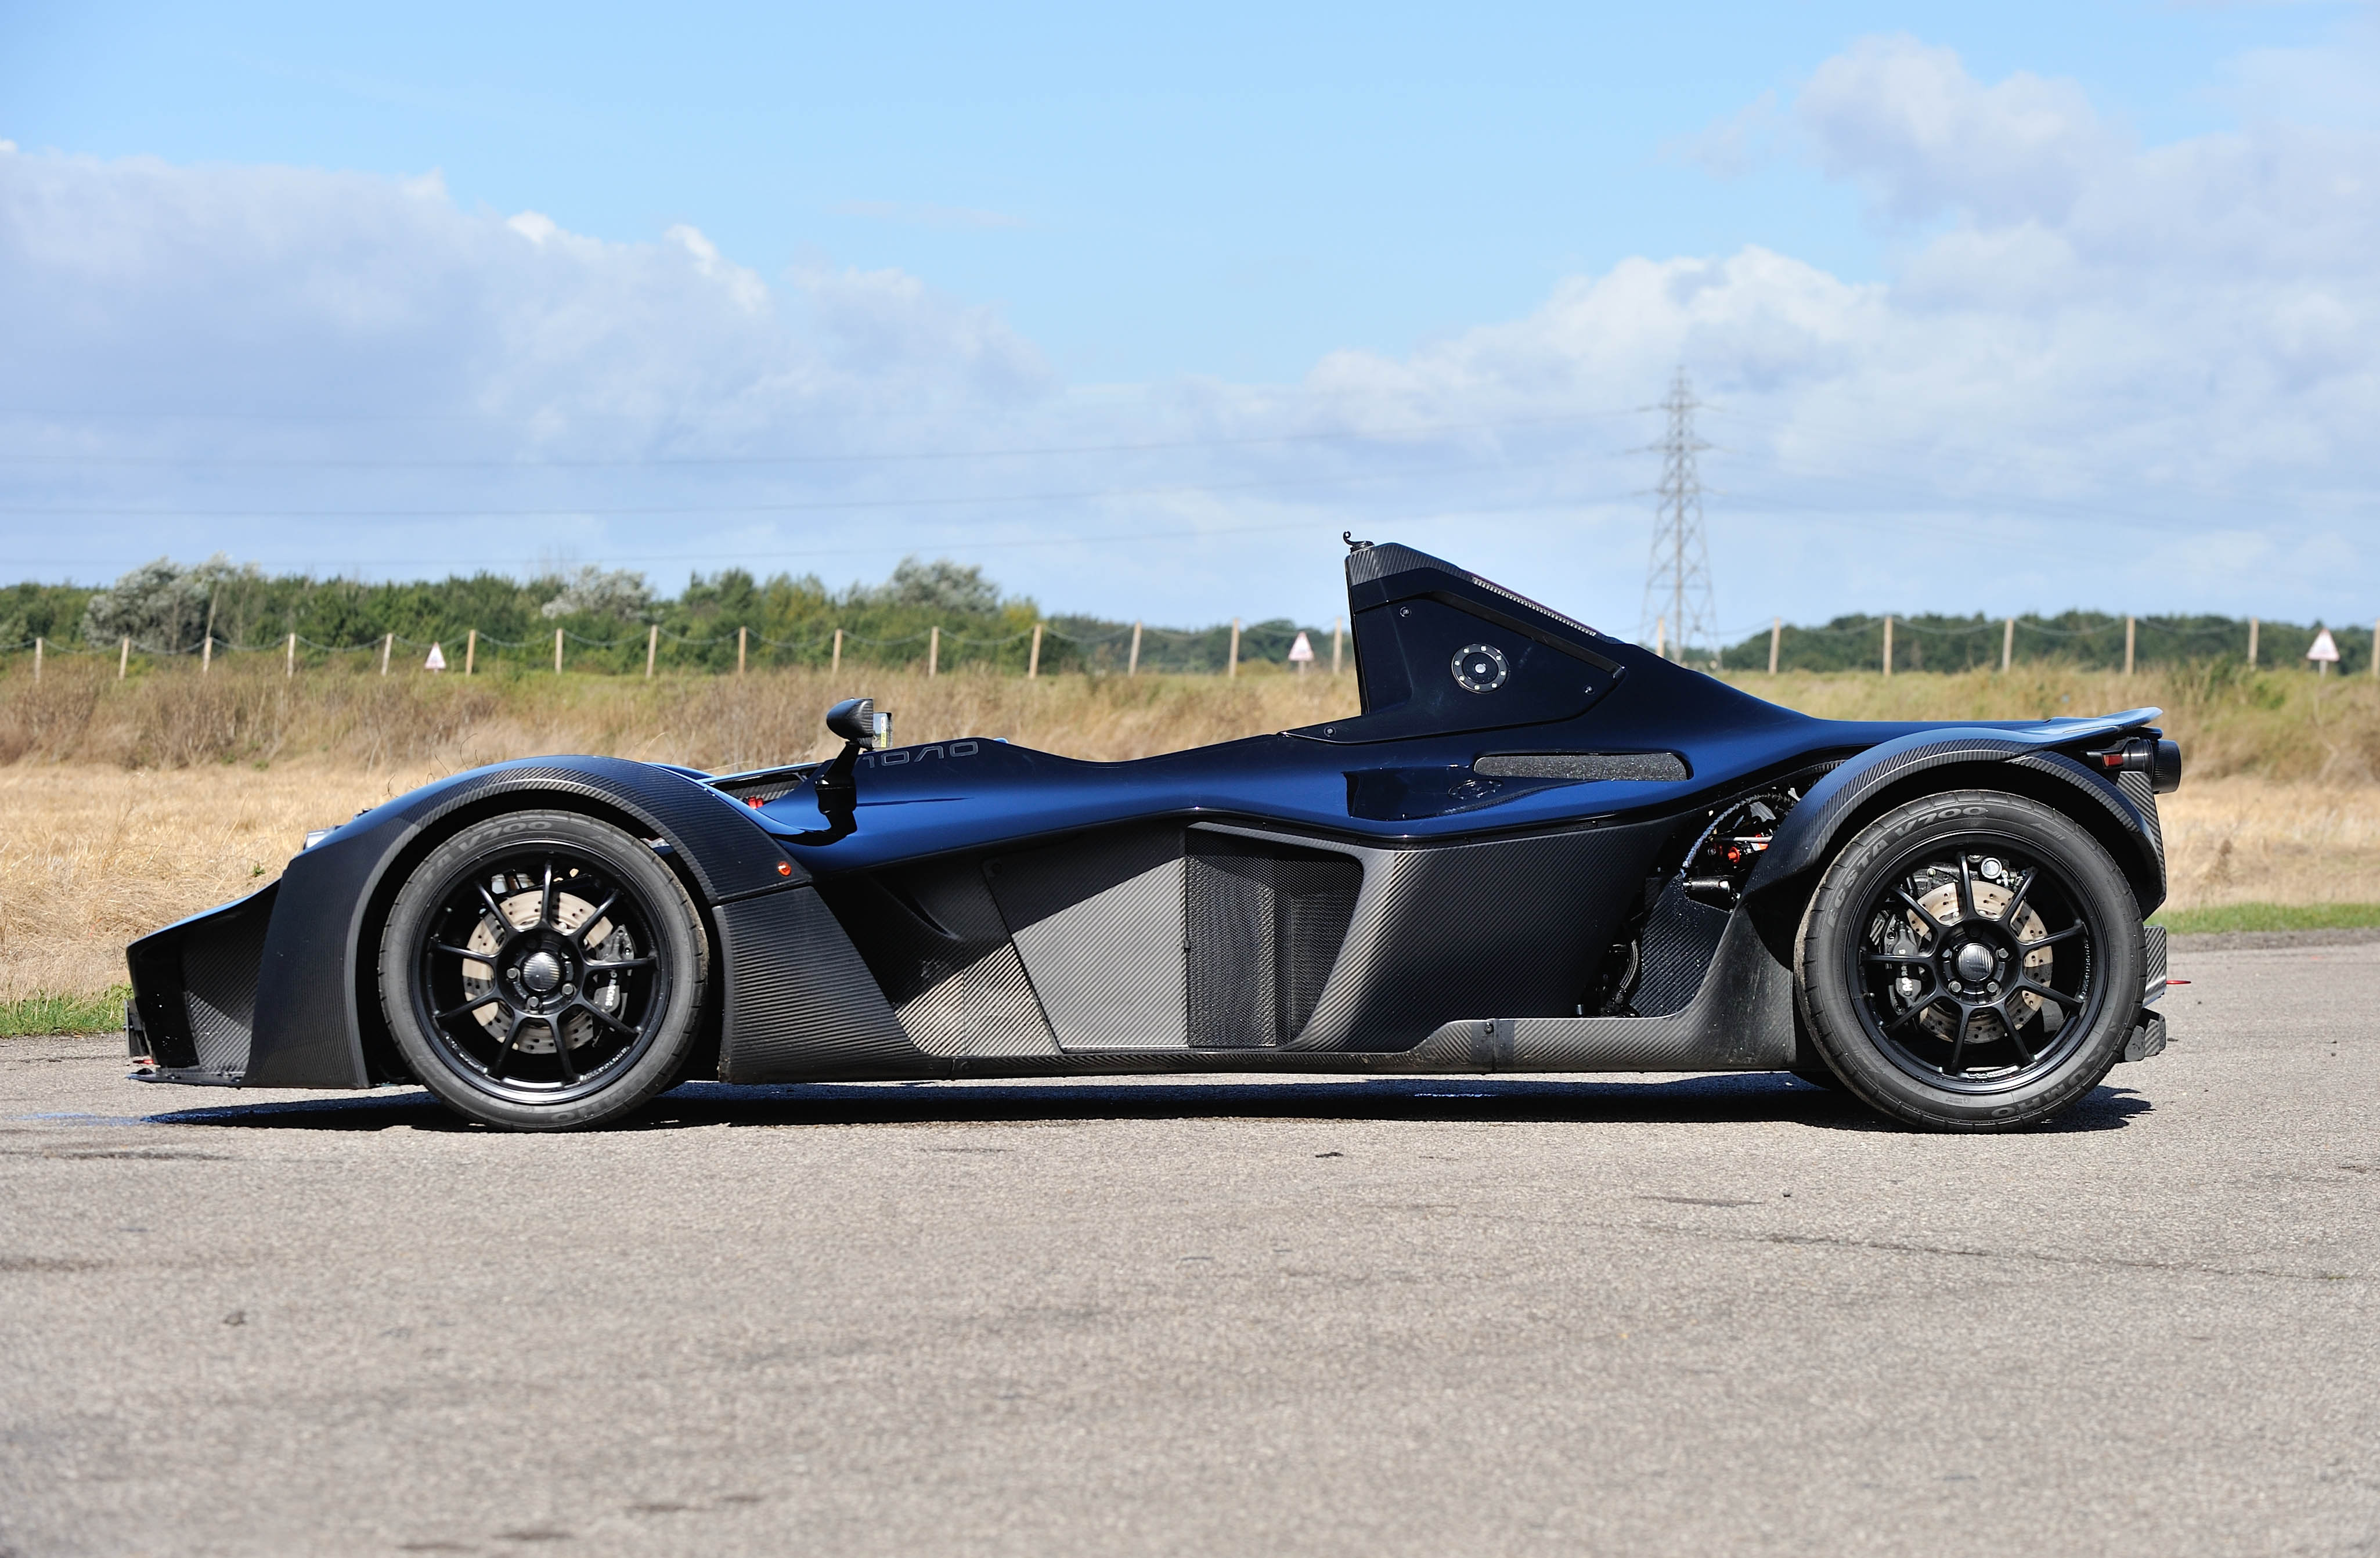 Bac Mono Price >> Bac Mono Review Price Track Test And Video Evo